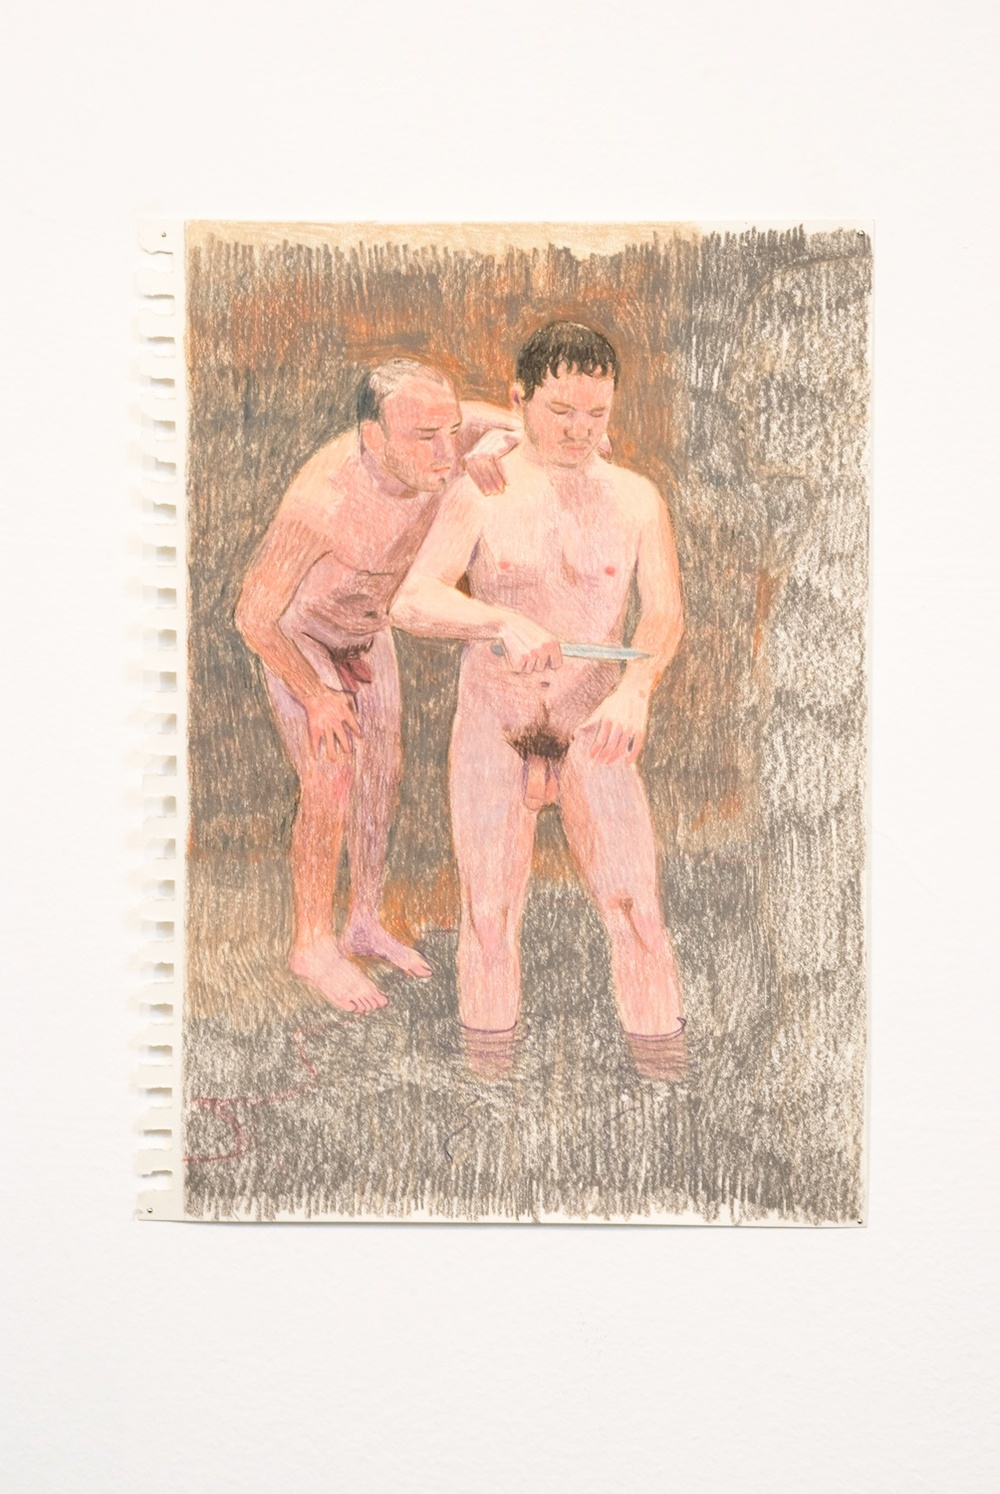 "Elijah Burgher The blood-letting 2 2010 Colored pencil on paper 8"" x 12"" EB008"